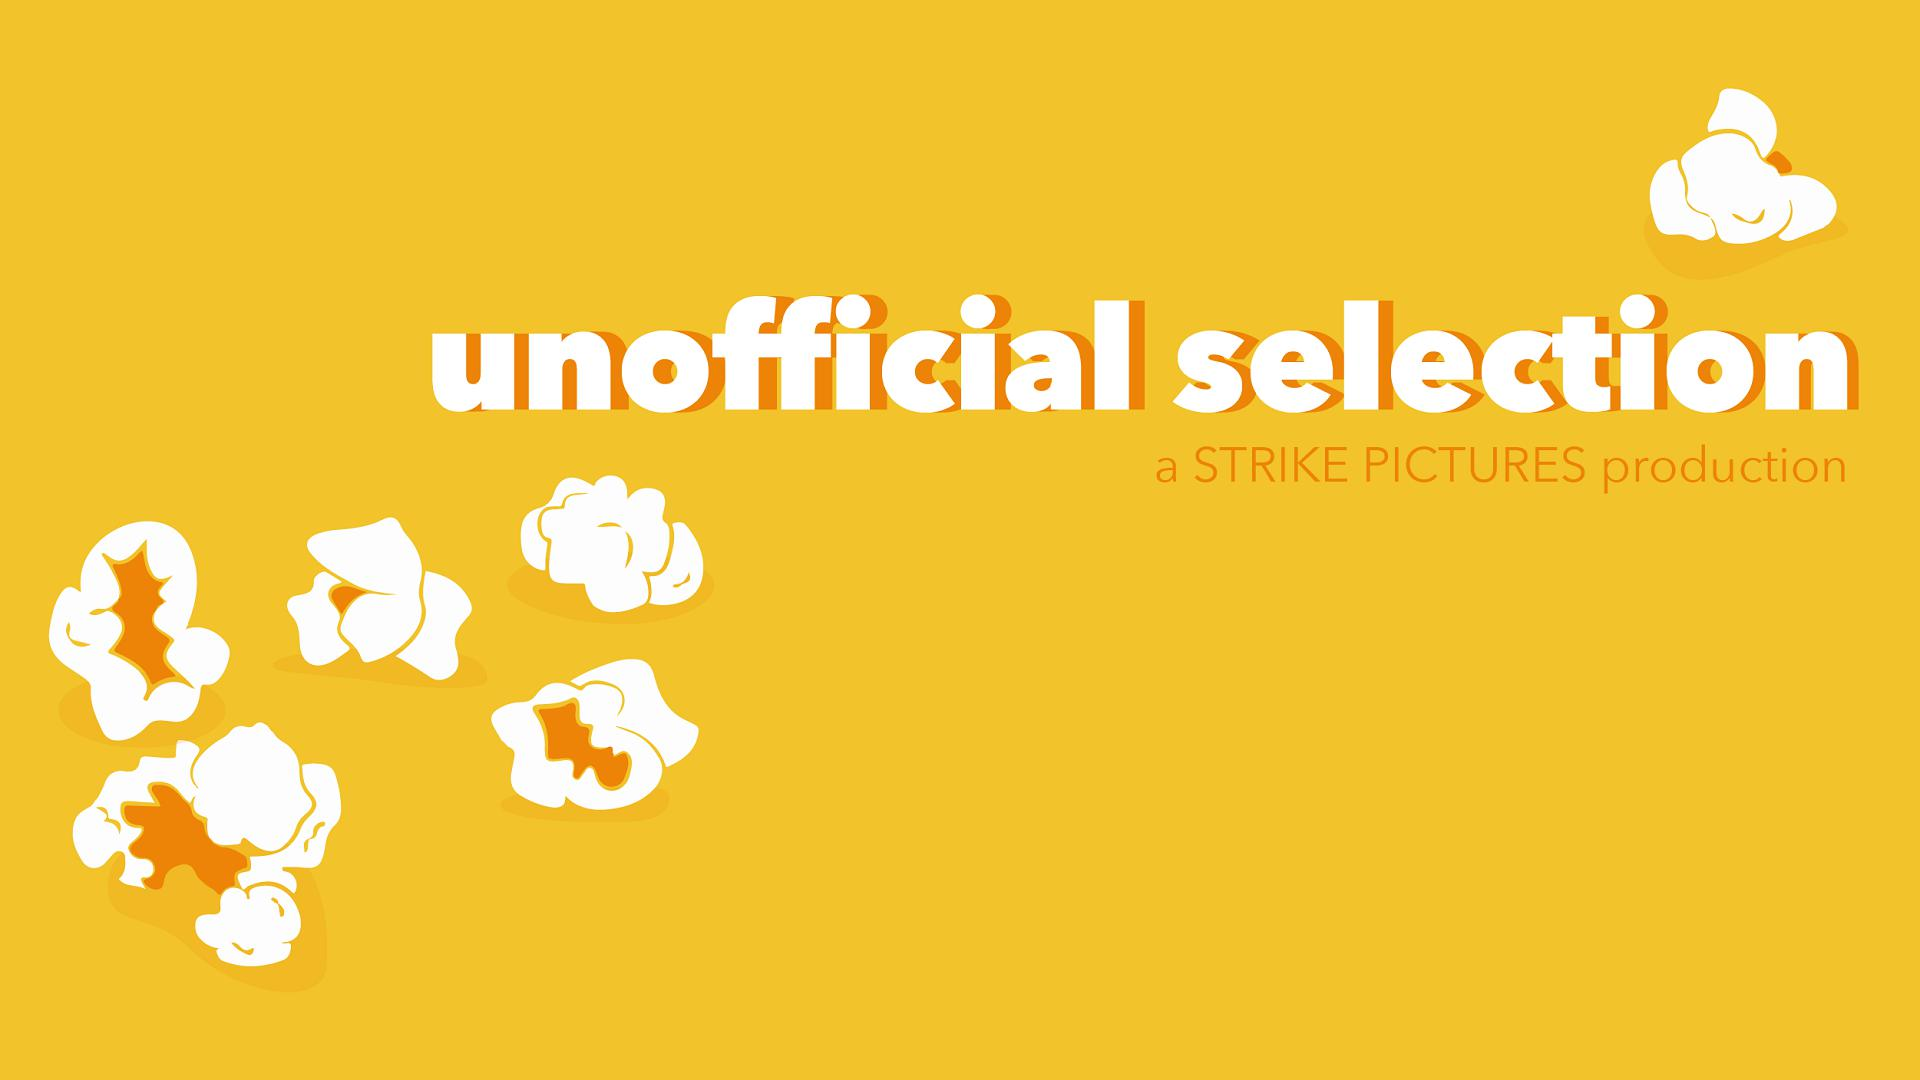 Unofficial Selection